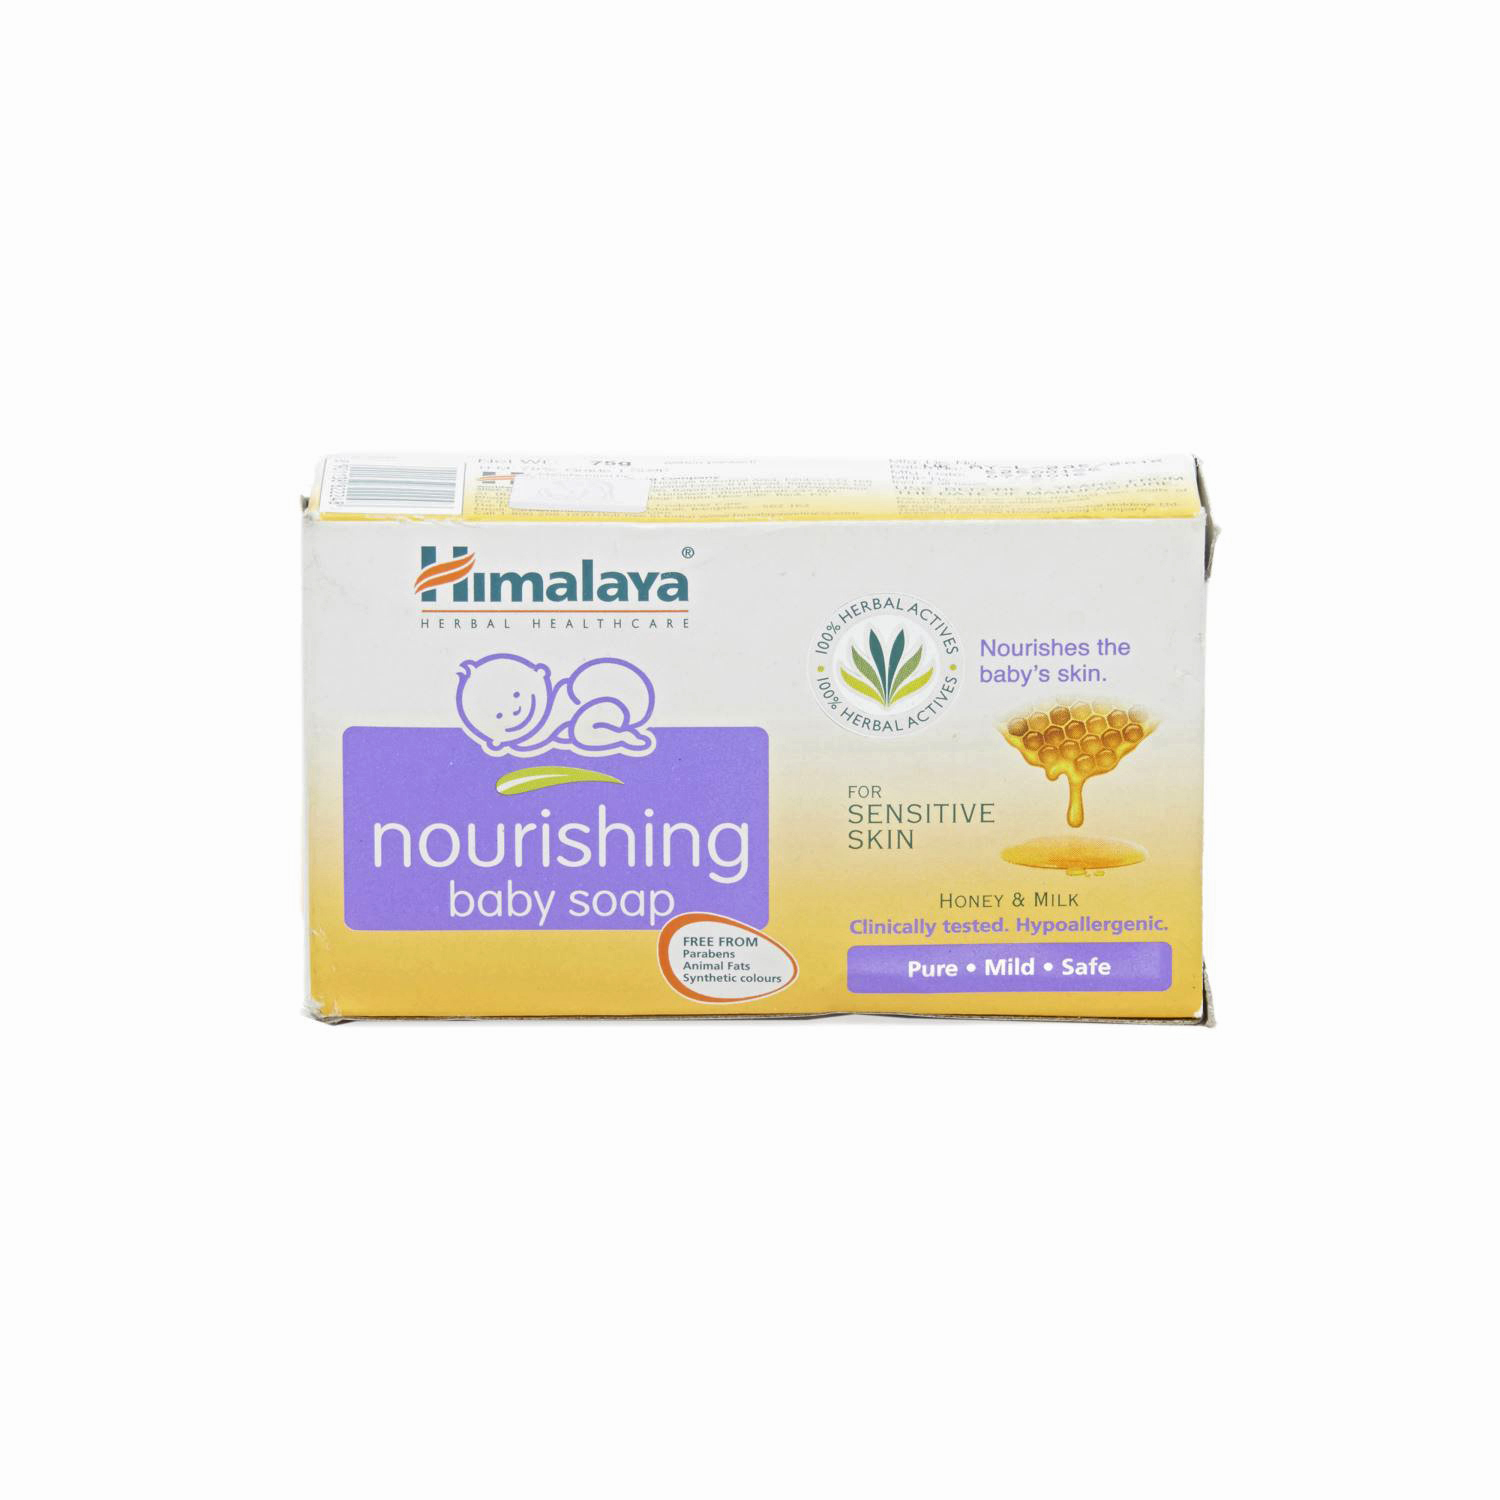 Himalaya Baby Nourishing Soap - 75 gm